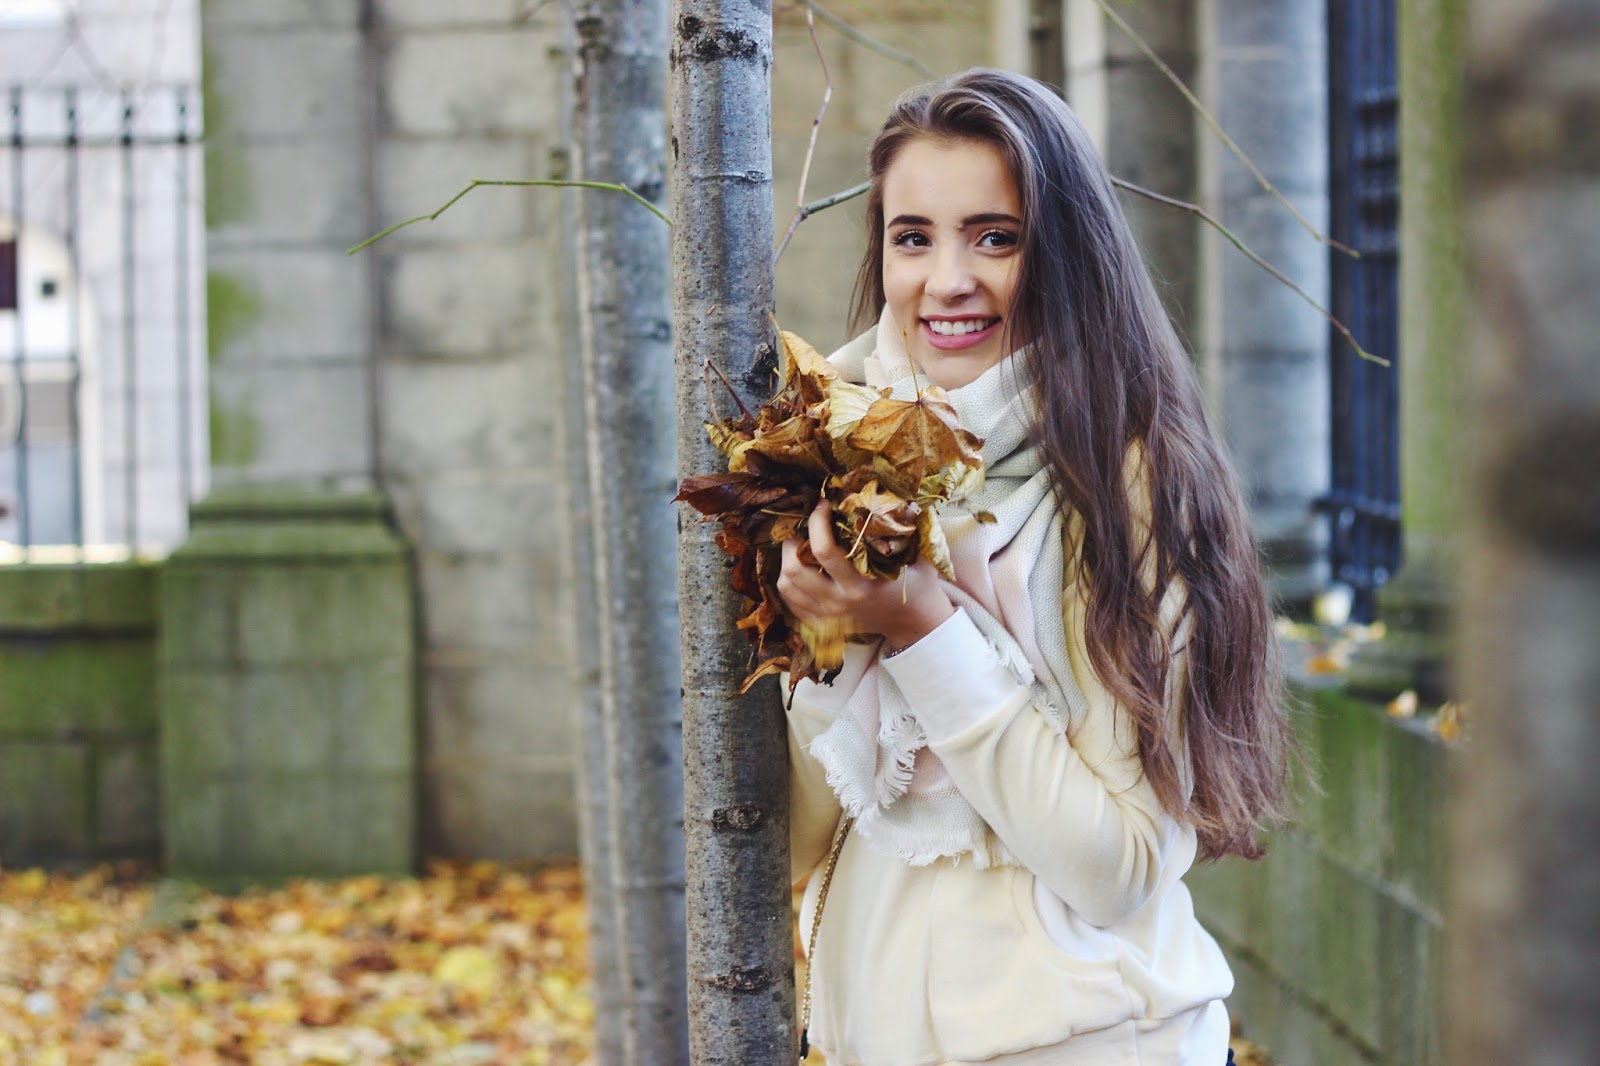 Autumn Leaves Photoshoot